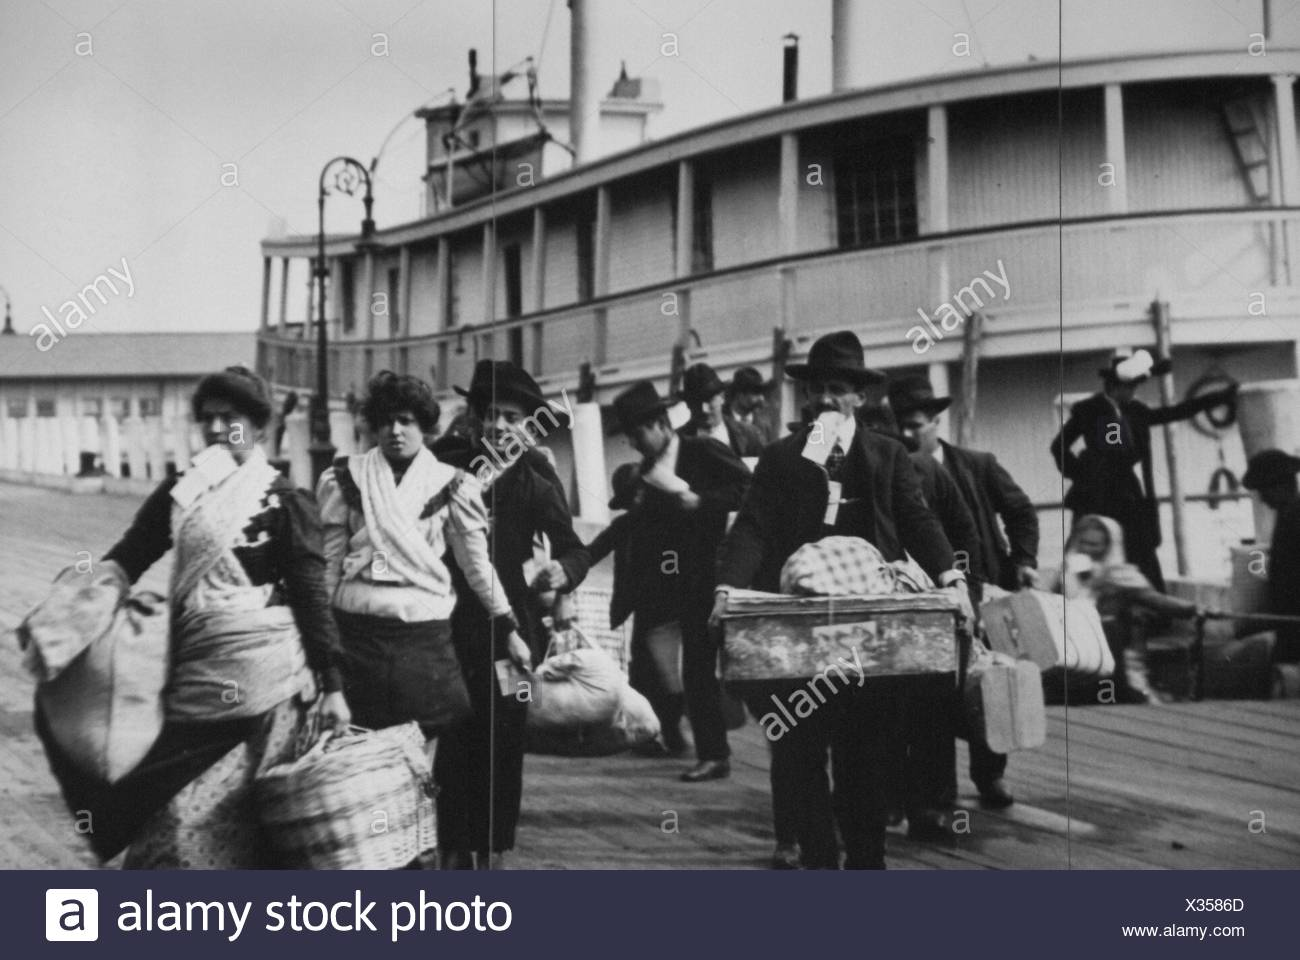 History Usa New York Immigrants Arriving From Europe At